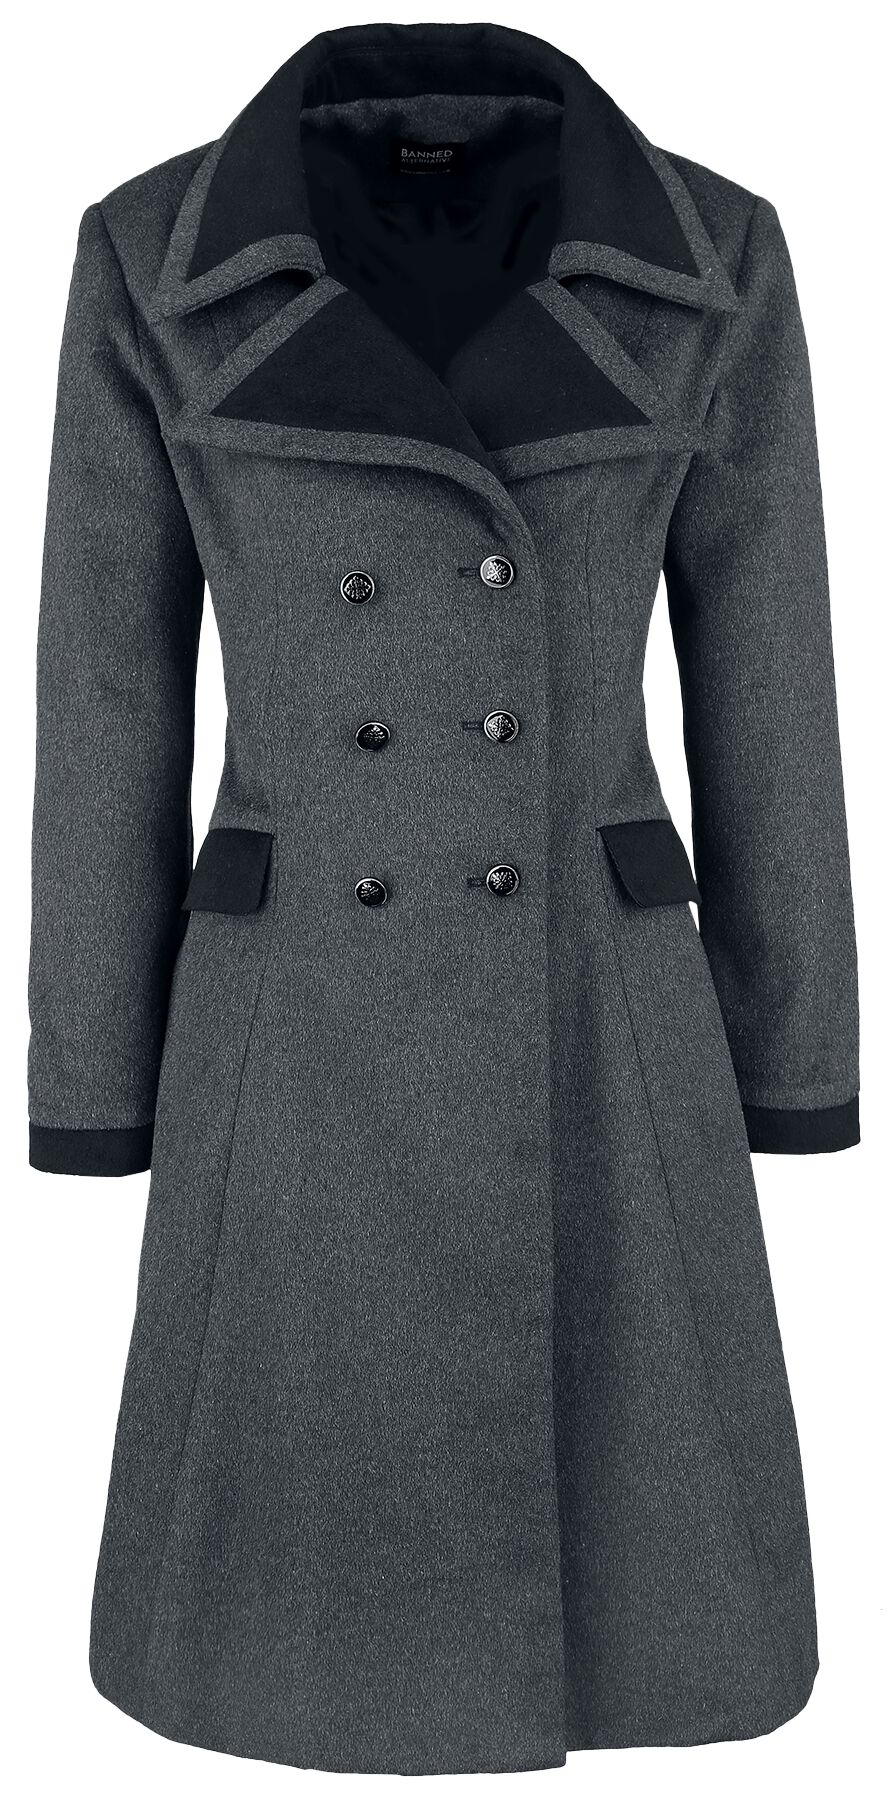 Image of Banned Alternative Retro Coat Cappotto donna grigio